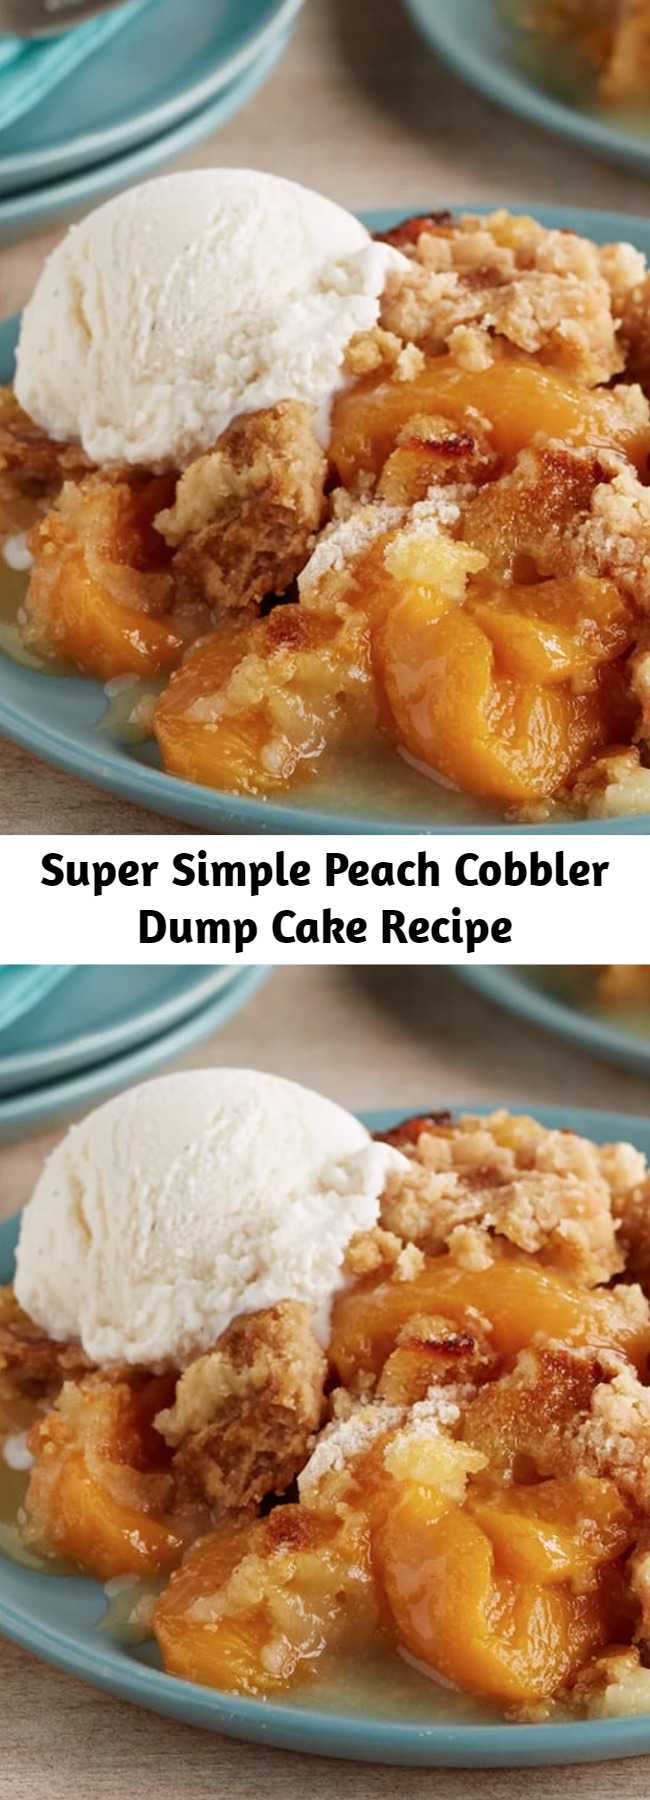 Super Simple Peach Cobbler Dump Cake Recipe - A super-simple sweet comfort food, made with 3 ingredients! No mixer, no eggs! Just layer fruit, dry cake mix and butter right in the baking dish, and a delicious dessert bakes up that's somewhere between a cobbler and a fruit crisp. Keep it good and simple, or try a variation to twist up the fun.